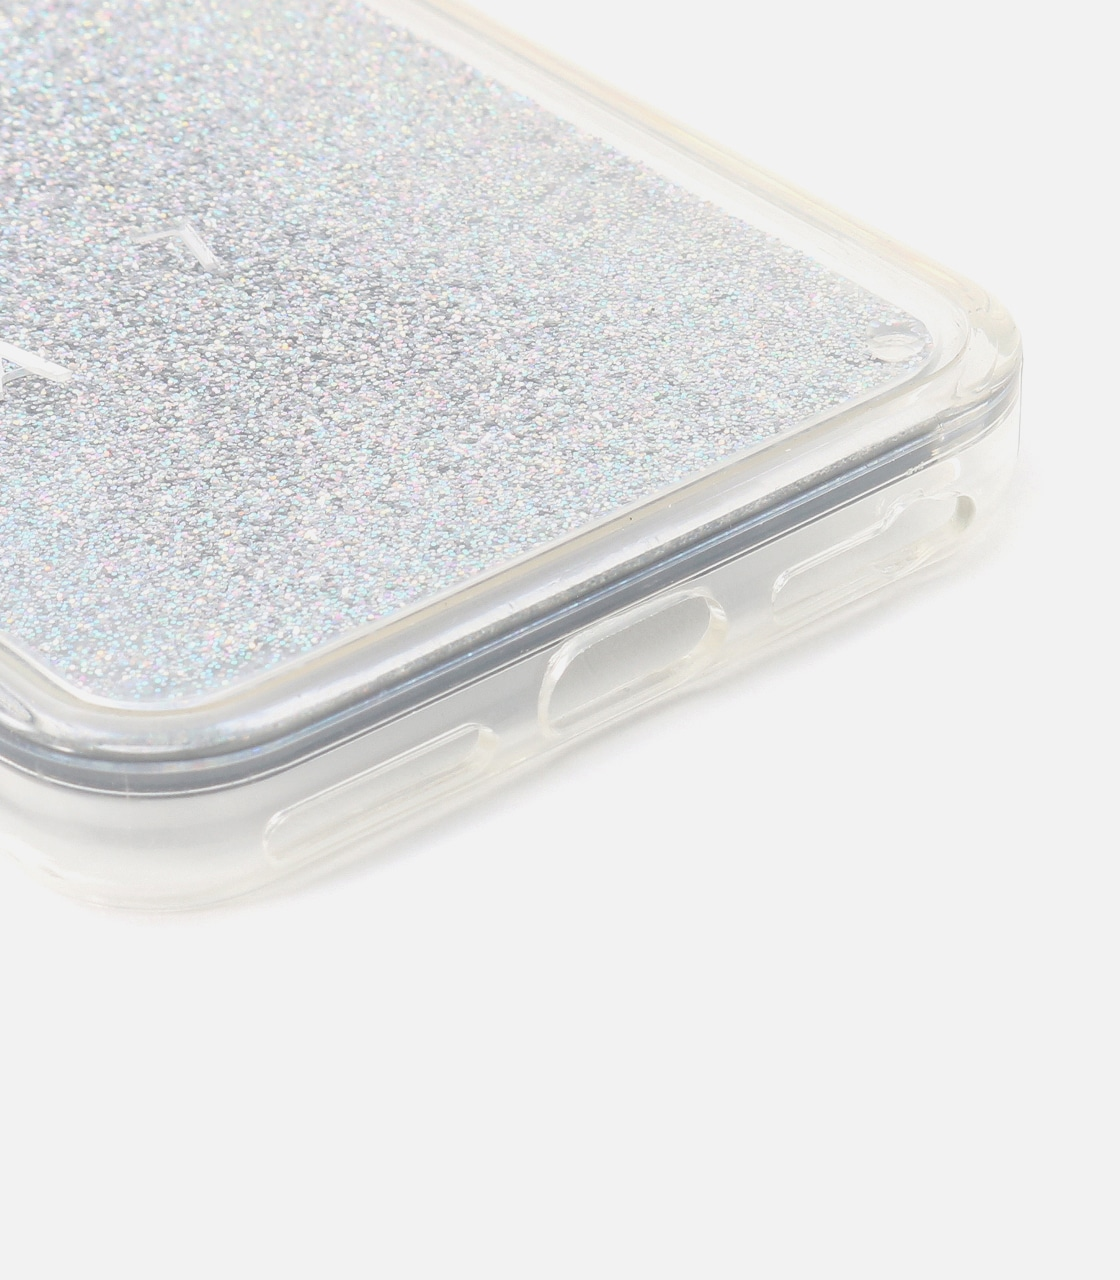 【AZUL BY MOUSSY】GLITTER SMARTPHONE CASE 詳細画像 SLV 5